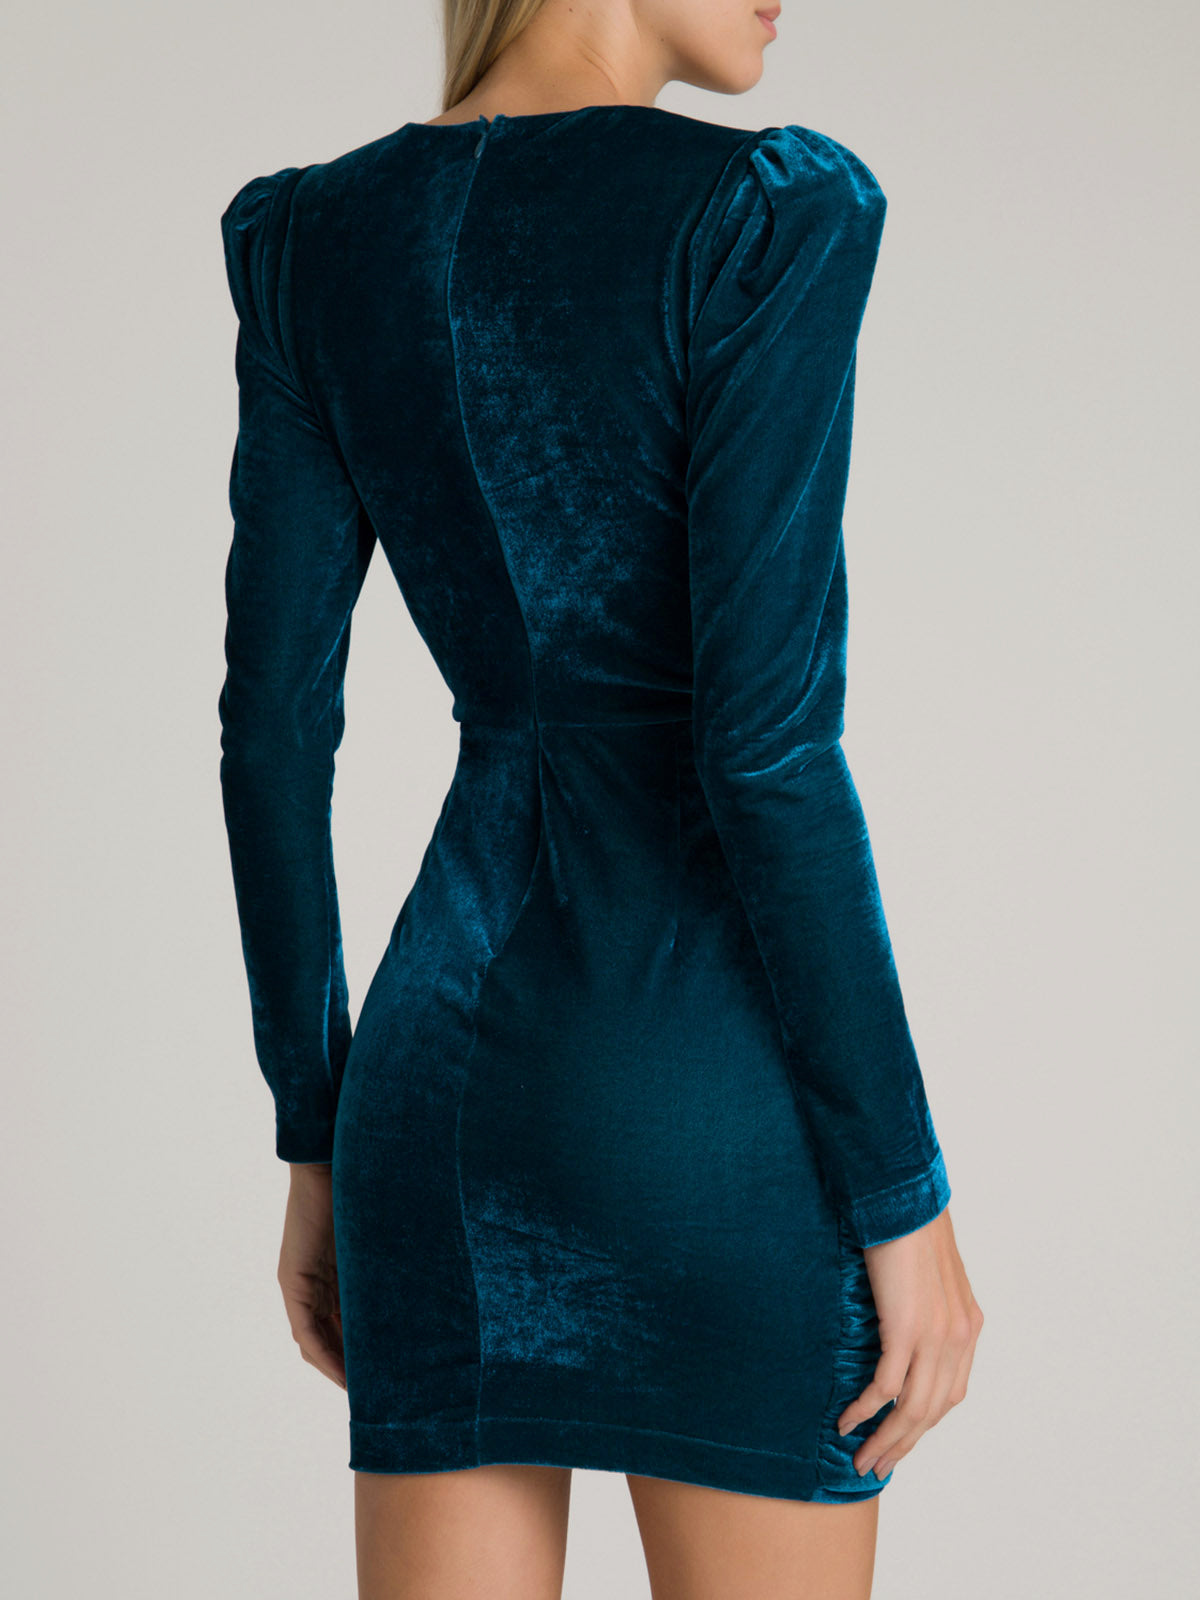 Velvet Ruched Mini Dress | Azure Velvet Ruched Mini Dress | Azure